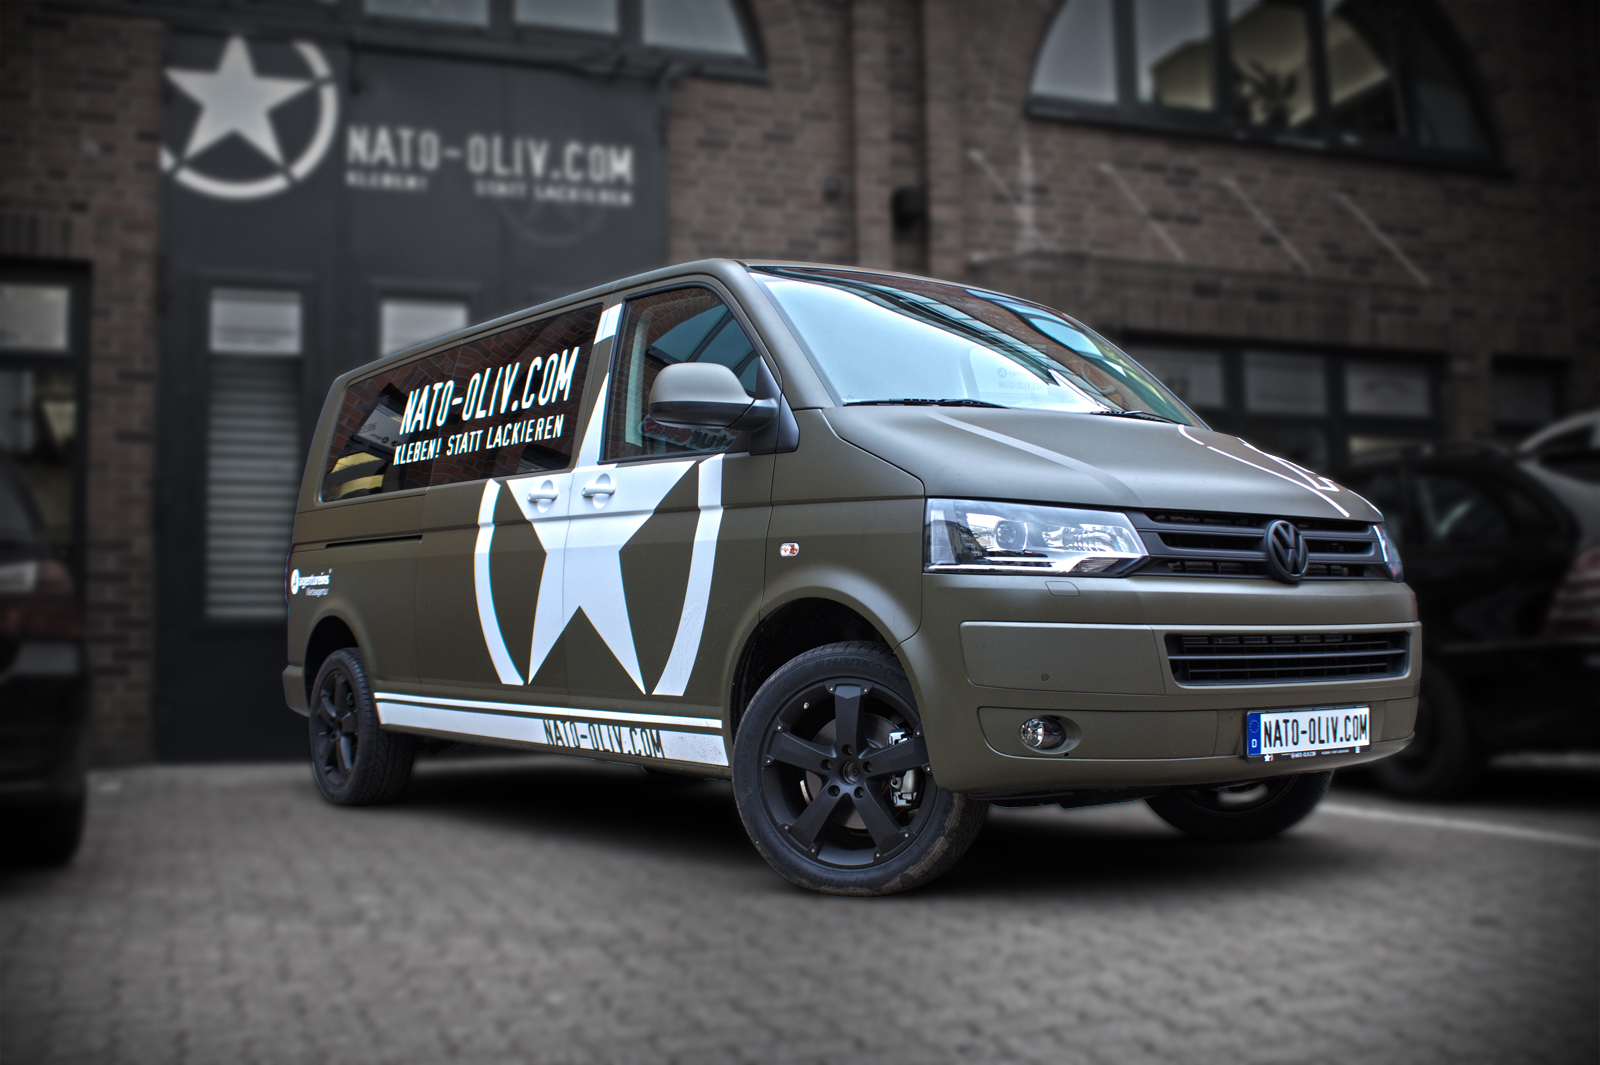 Www Car Möbel Vw T5 In Nato Oliv | Nato-oliv.com